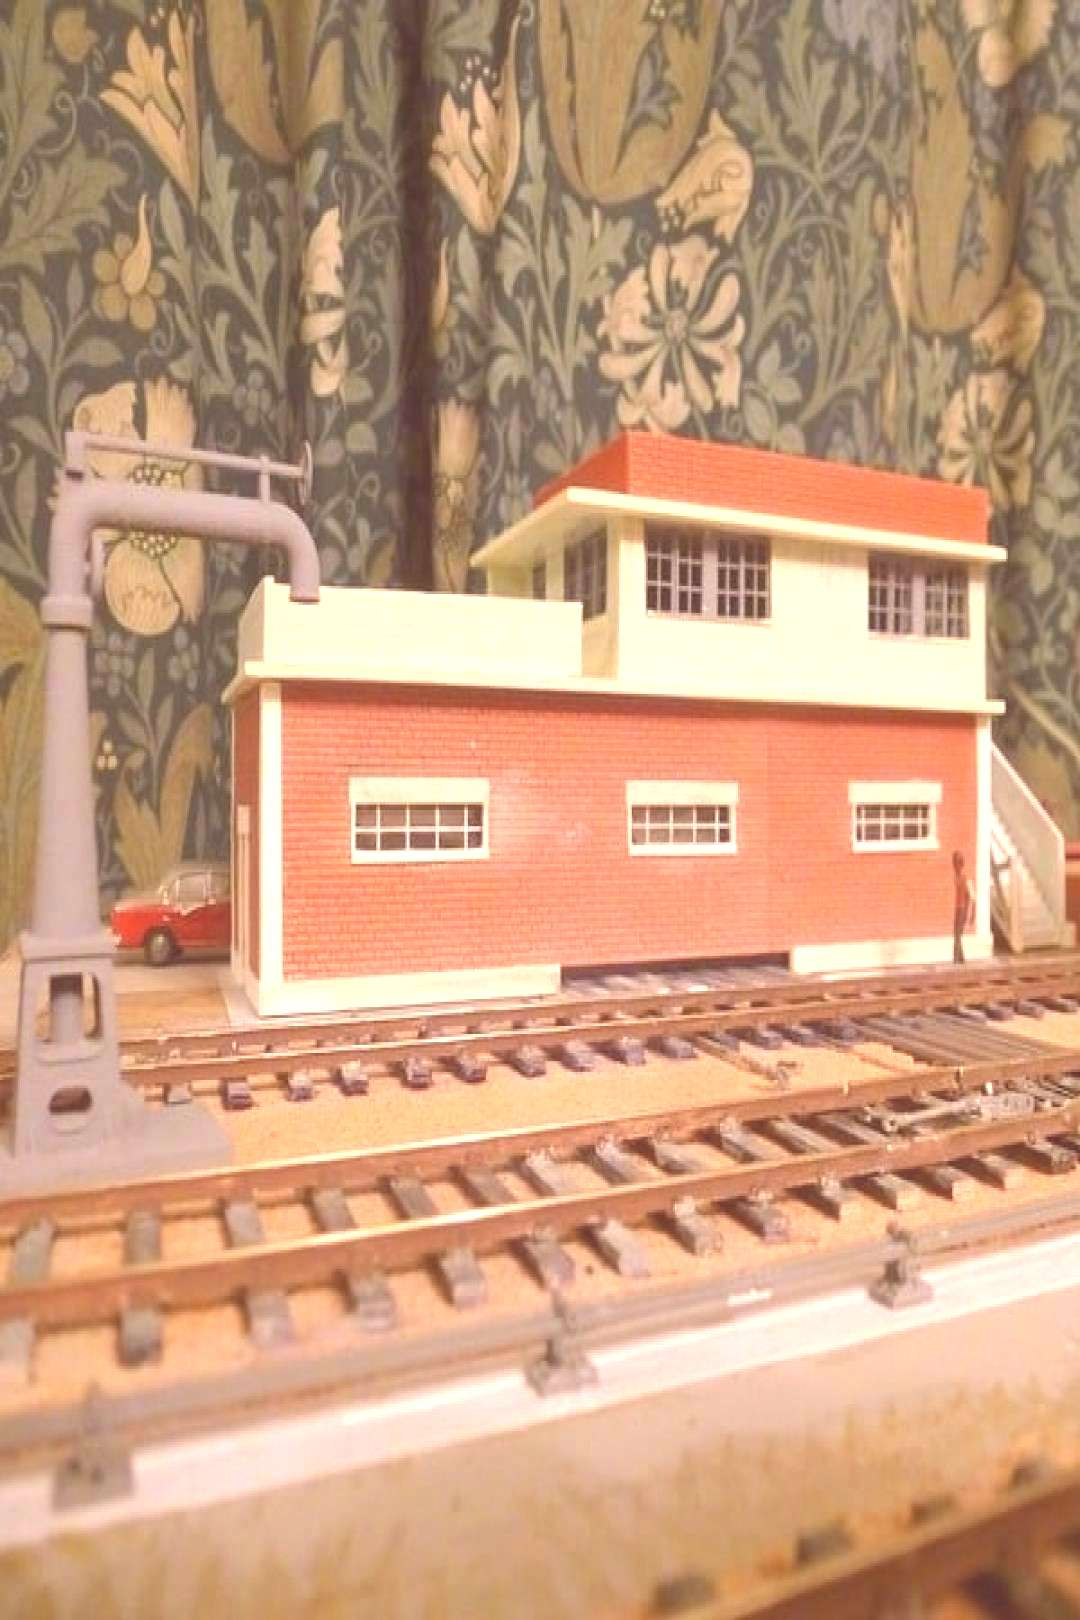 Pegasus Designs JBM on March 17 2020You can find Model trains and more on our website.Pegasus Desig